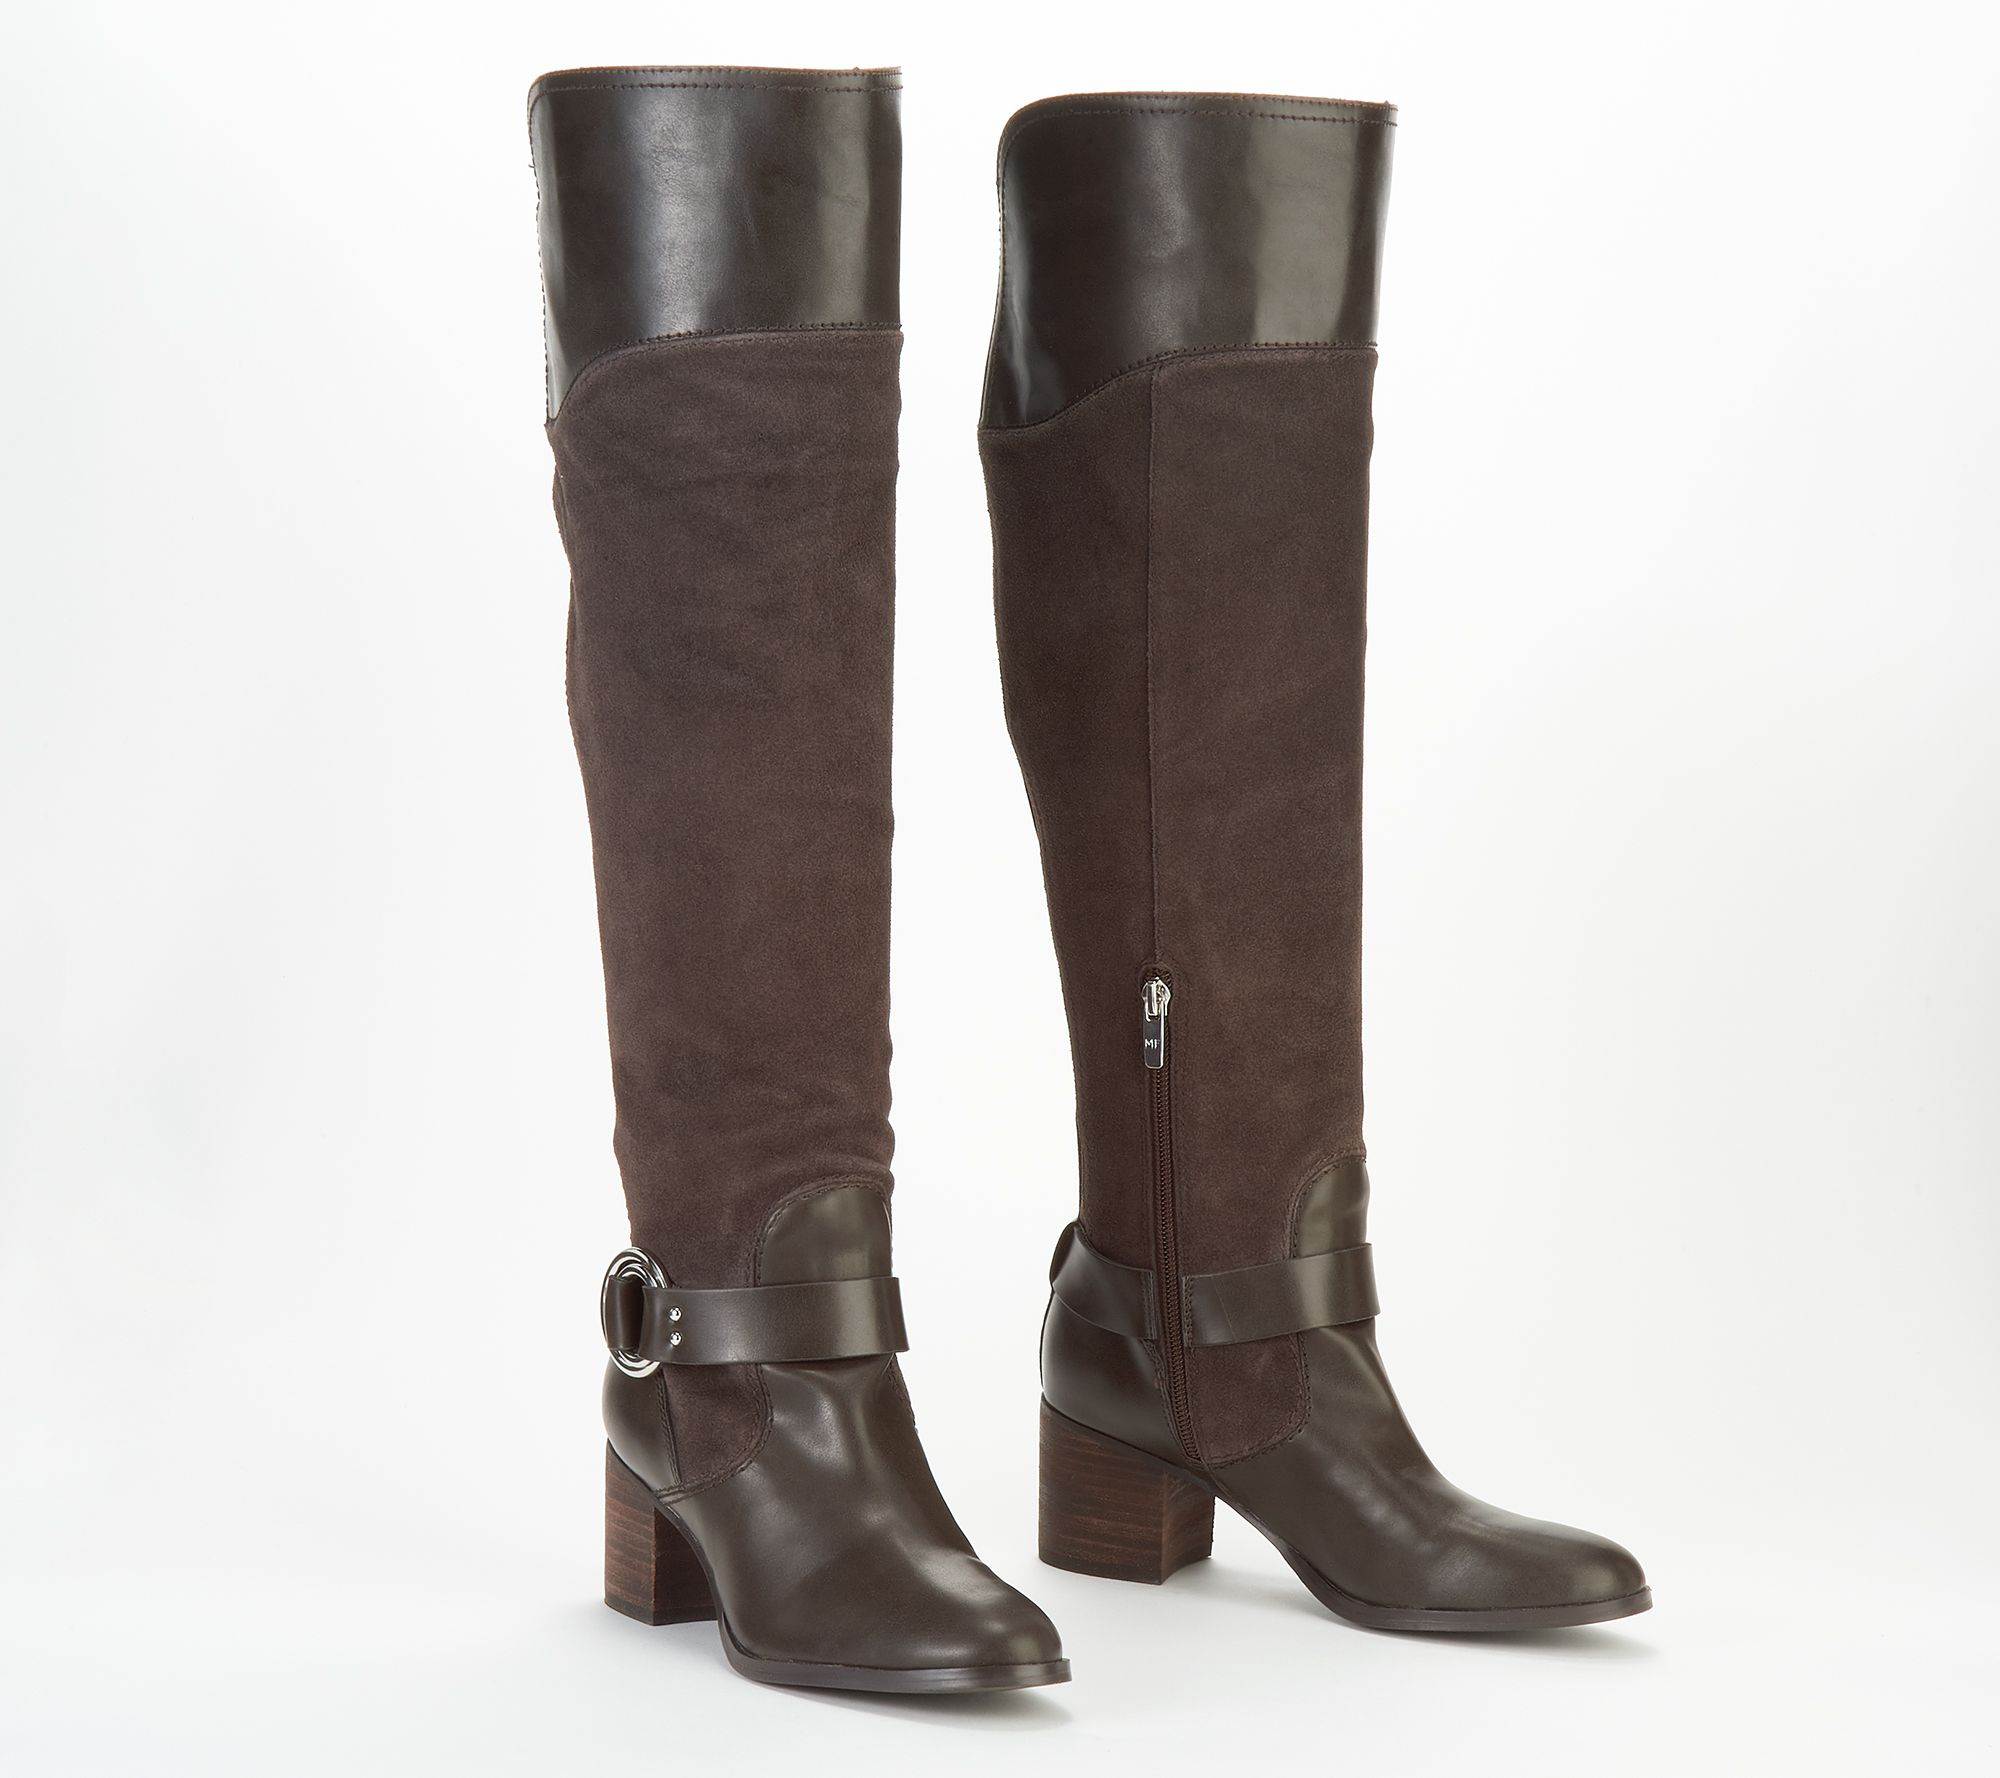 031fe18aefd Marc Fisher Leather/Suede Wide Calf Over the Knee Boots - Editer — QVC.com